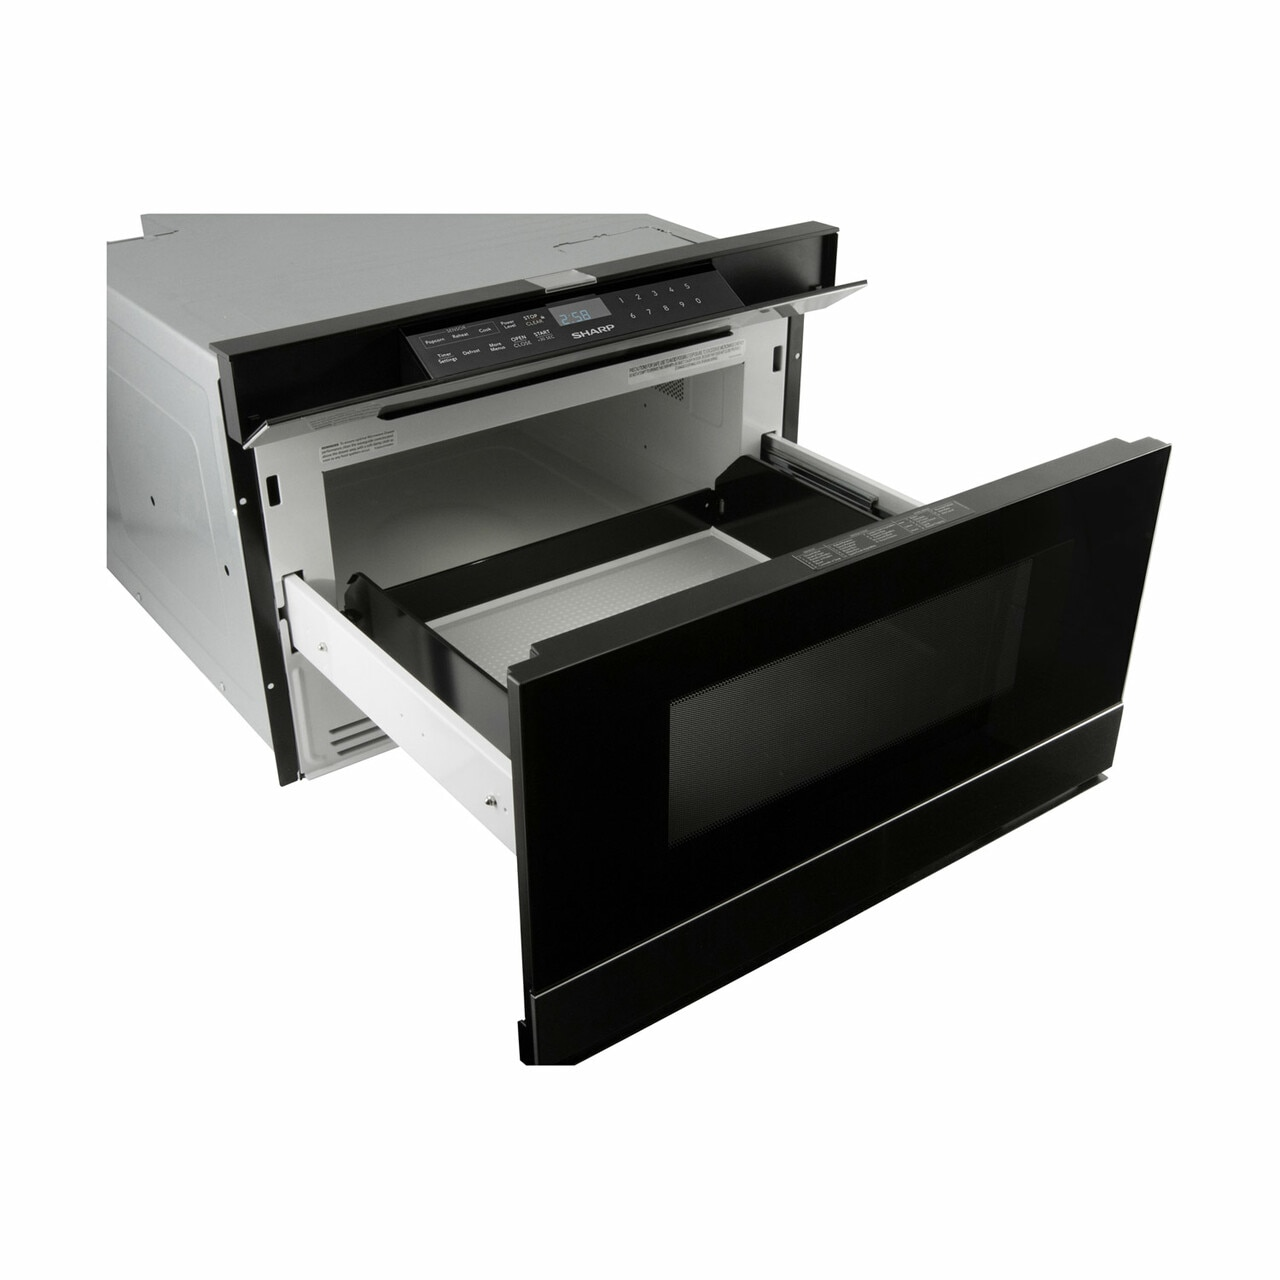 Sharp Easy Wave Open Microwave Drawer (SMD2480CS) – Concealed touch glass controls